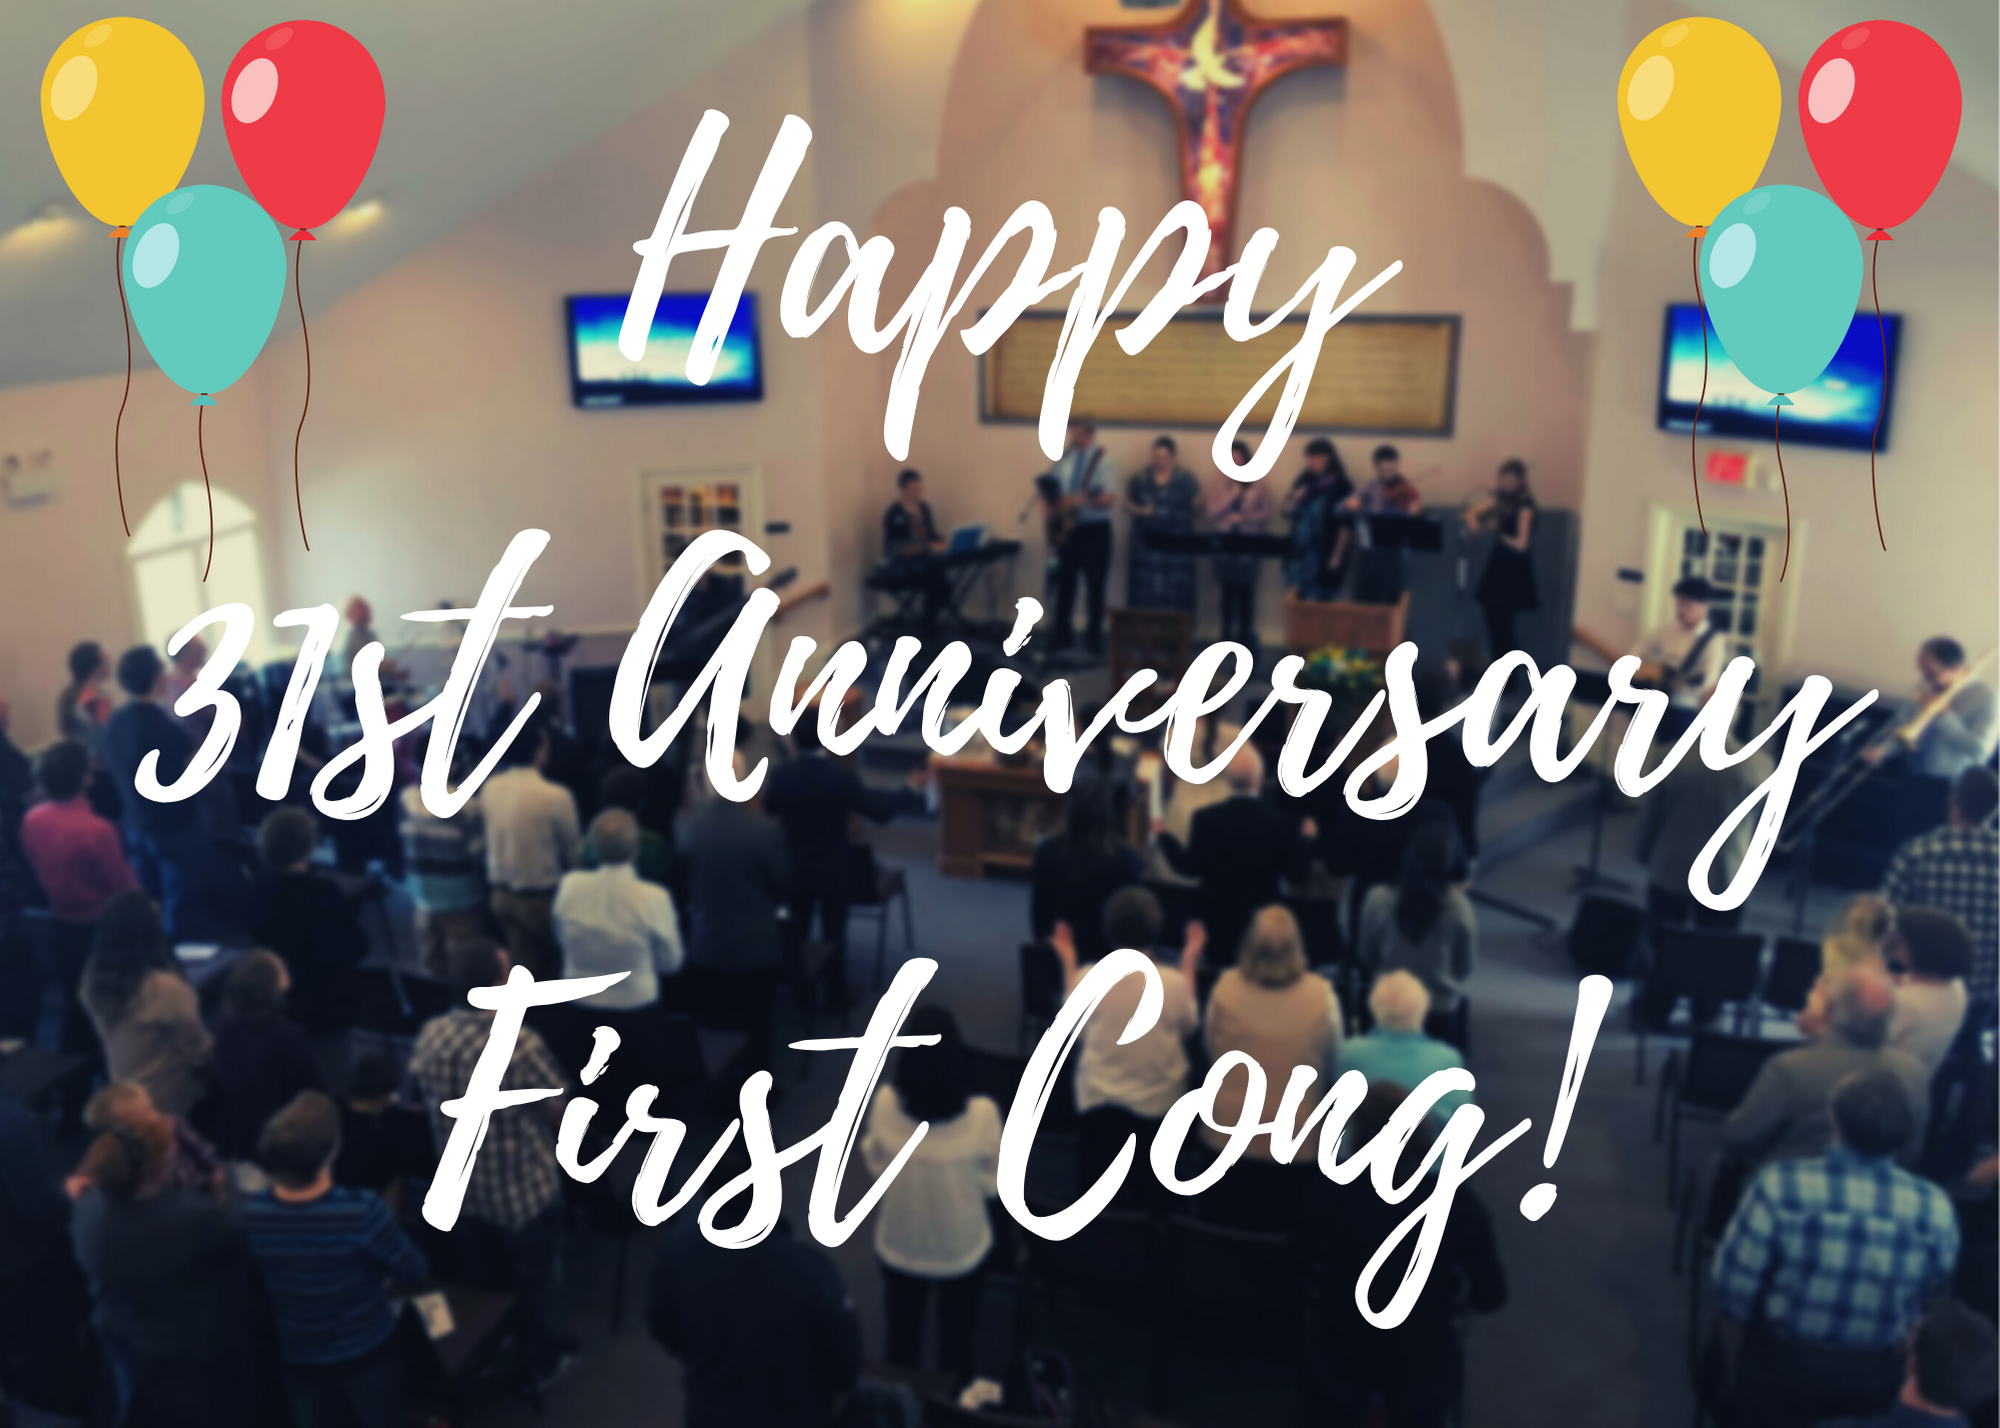 Happy 31st Anniversary First Cong!